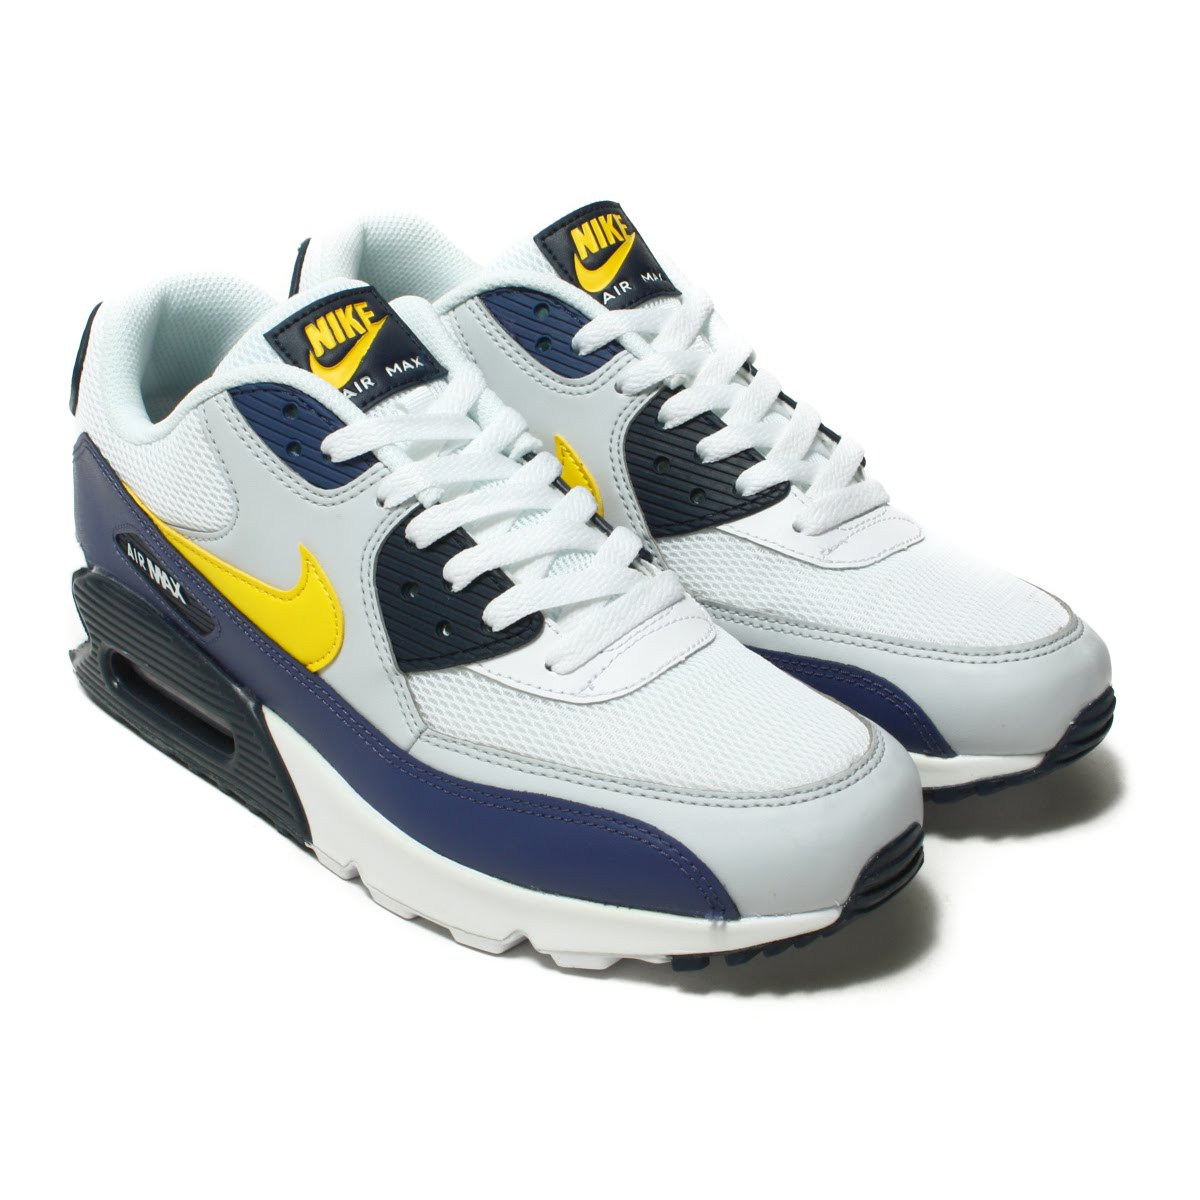 9c9c28c29ed0 NIKE AIR MAX 90 ESSENTIAL (Kie Ney AMAX 90 essential) WHITE TOUR YELLOW-BLUE  RECALL 18SP-I